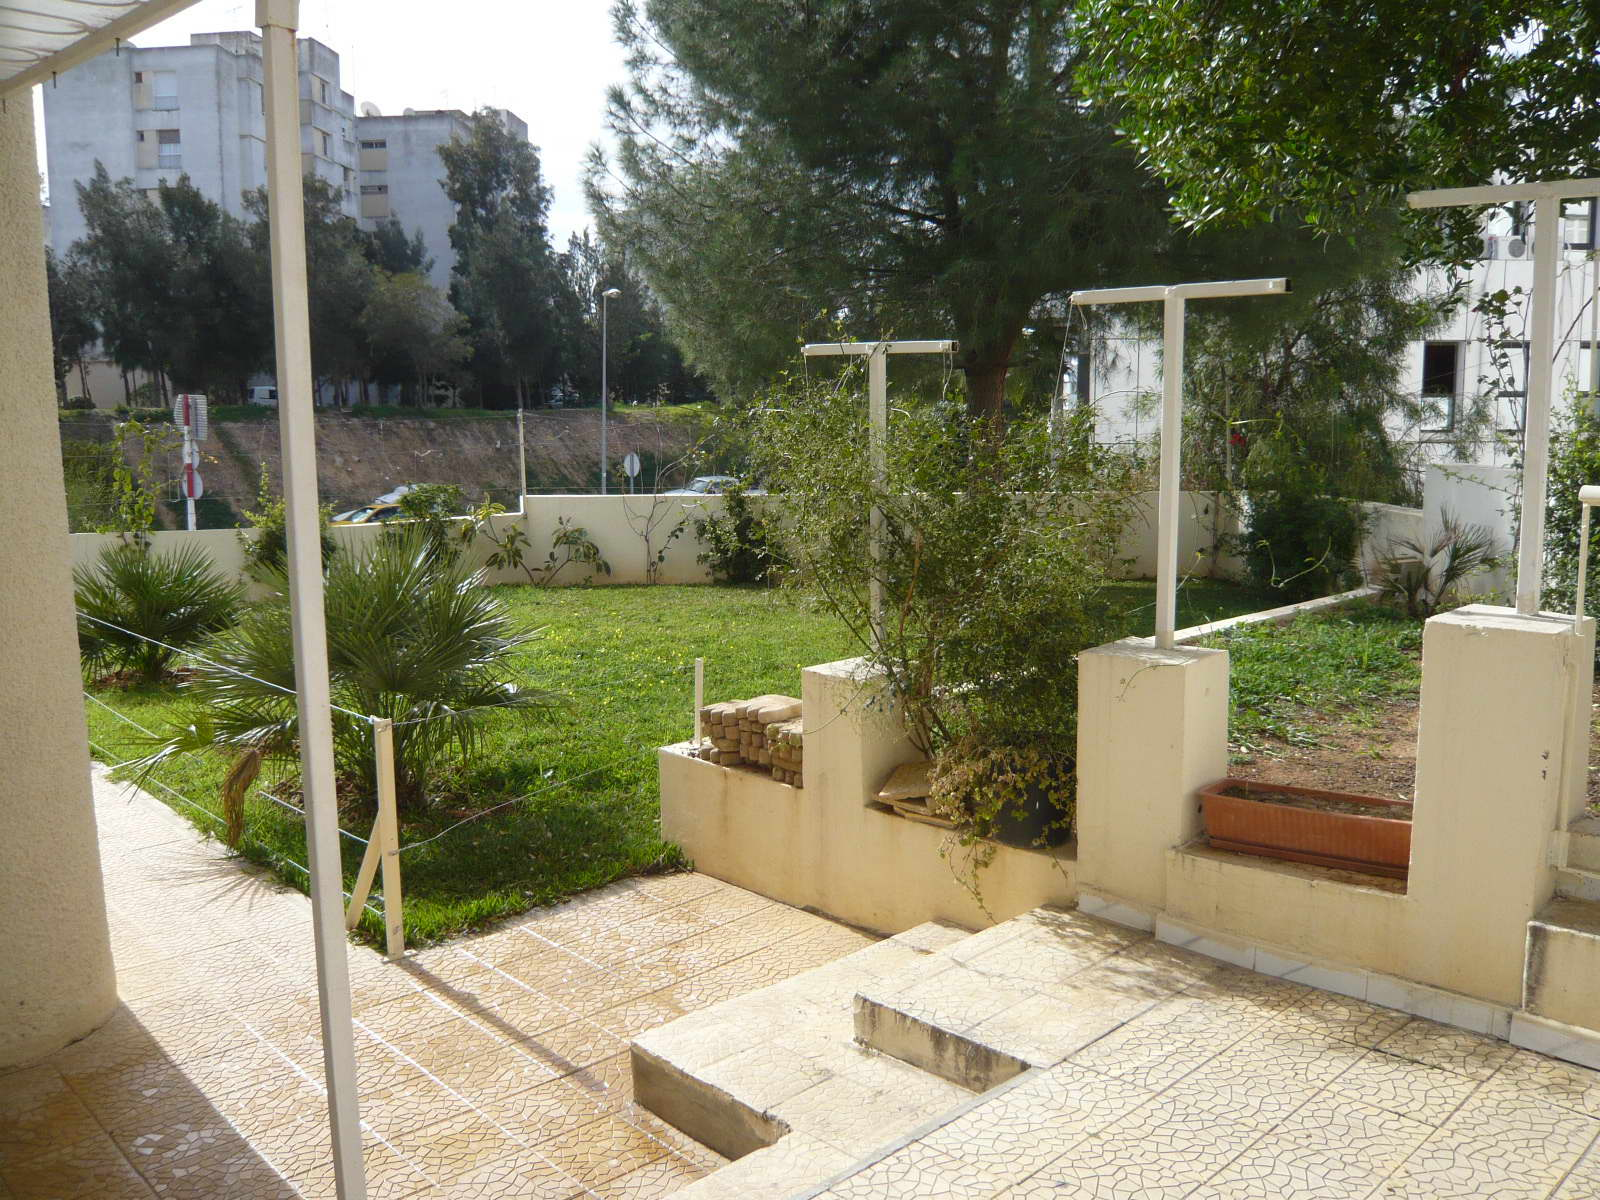 images_immo/tunis_immobilier111026d1.jpg